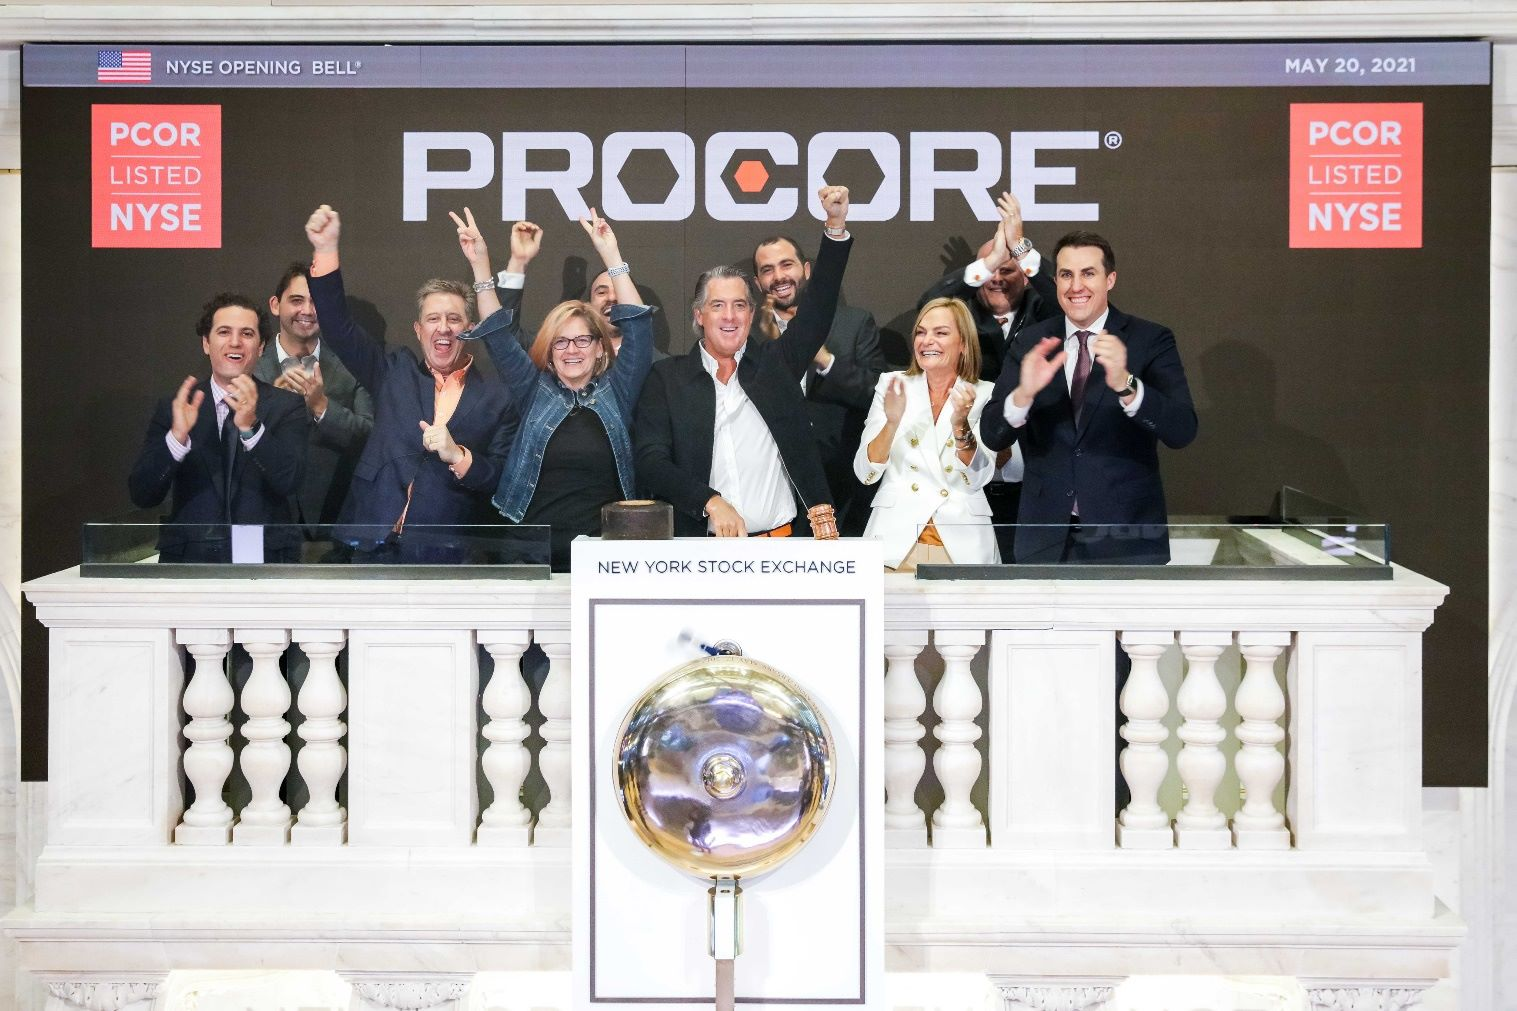 Procore on IPO event at NYSE